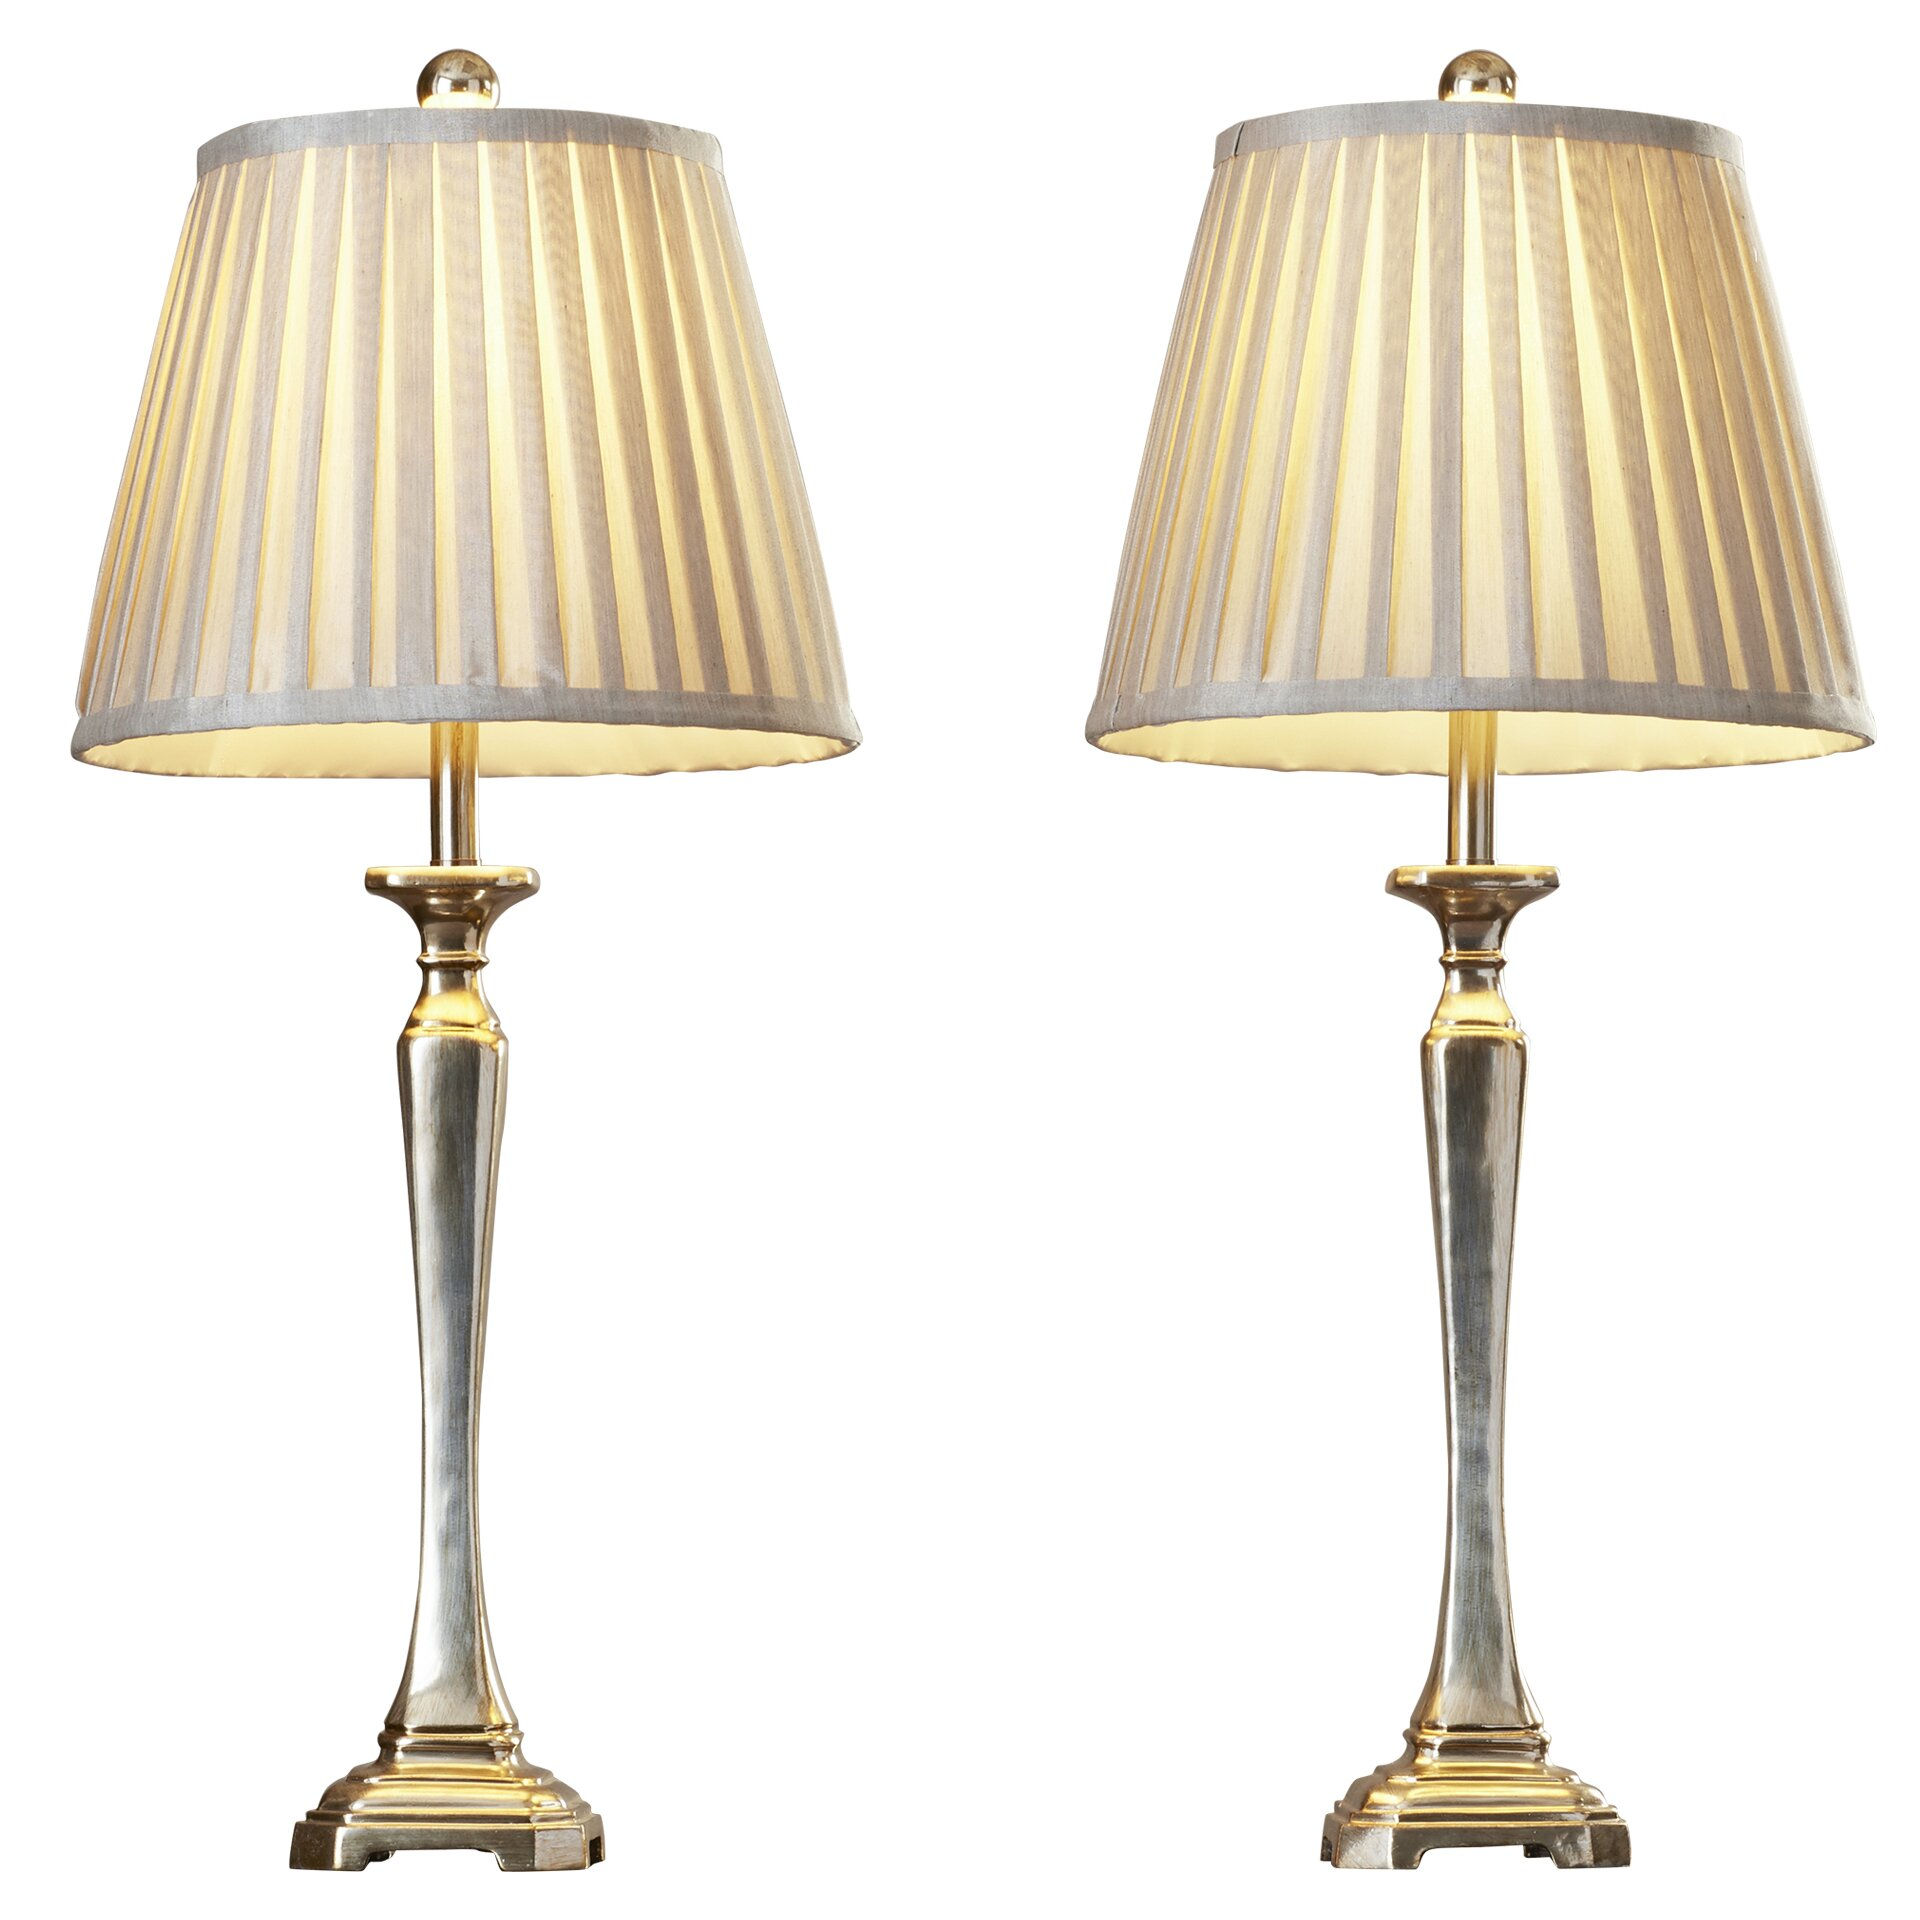 posts washingtonville 28 table lamps set of 2 reviews way. Black Bedroom Furniture Sets. Home Design Ideas